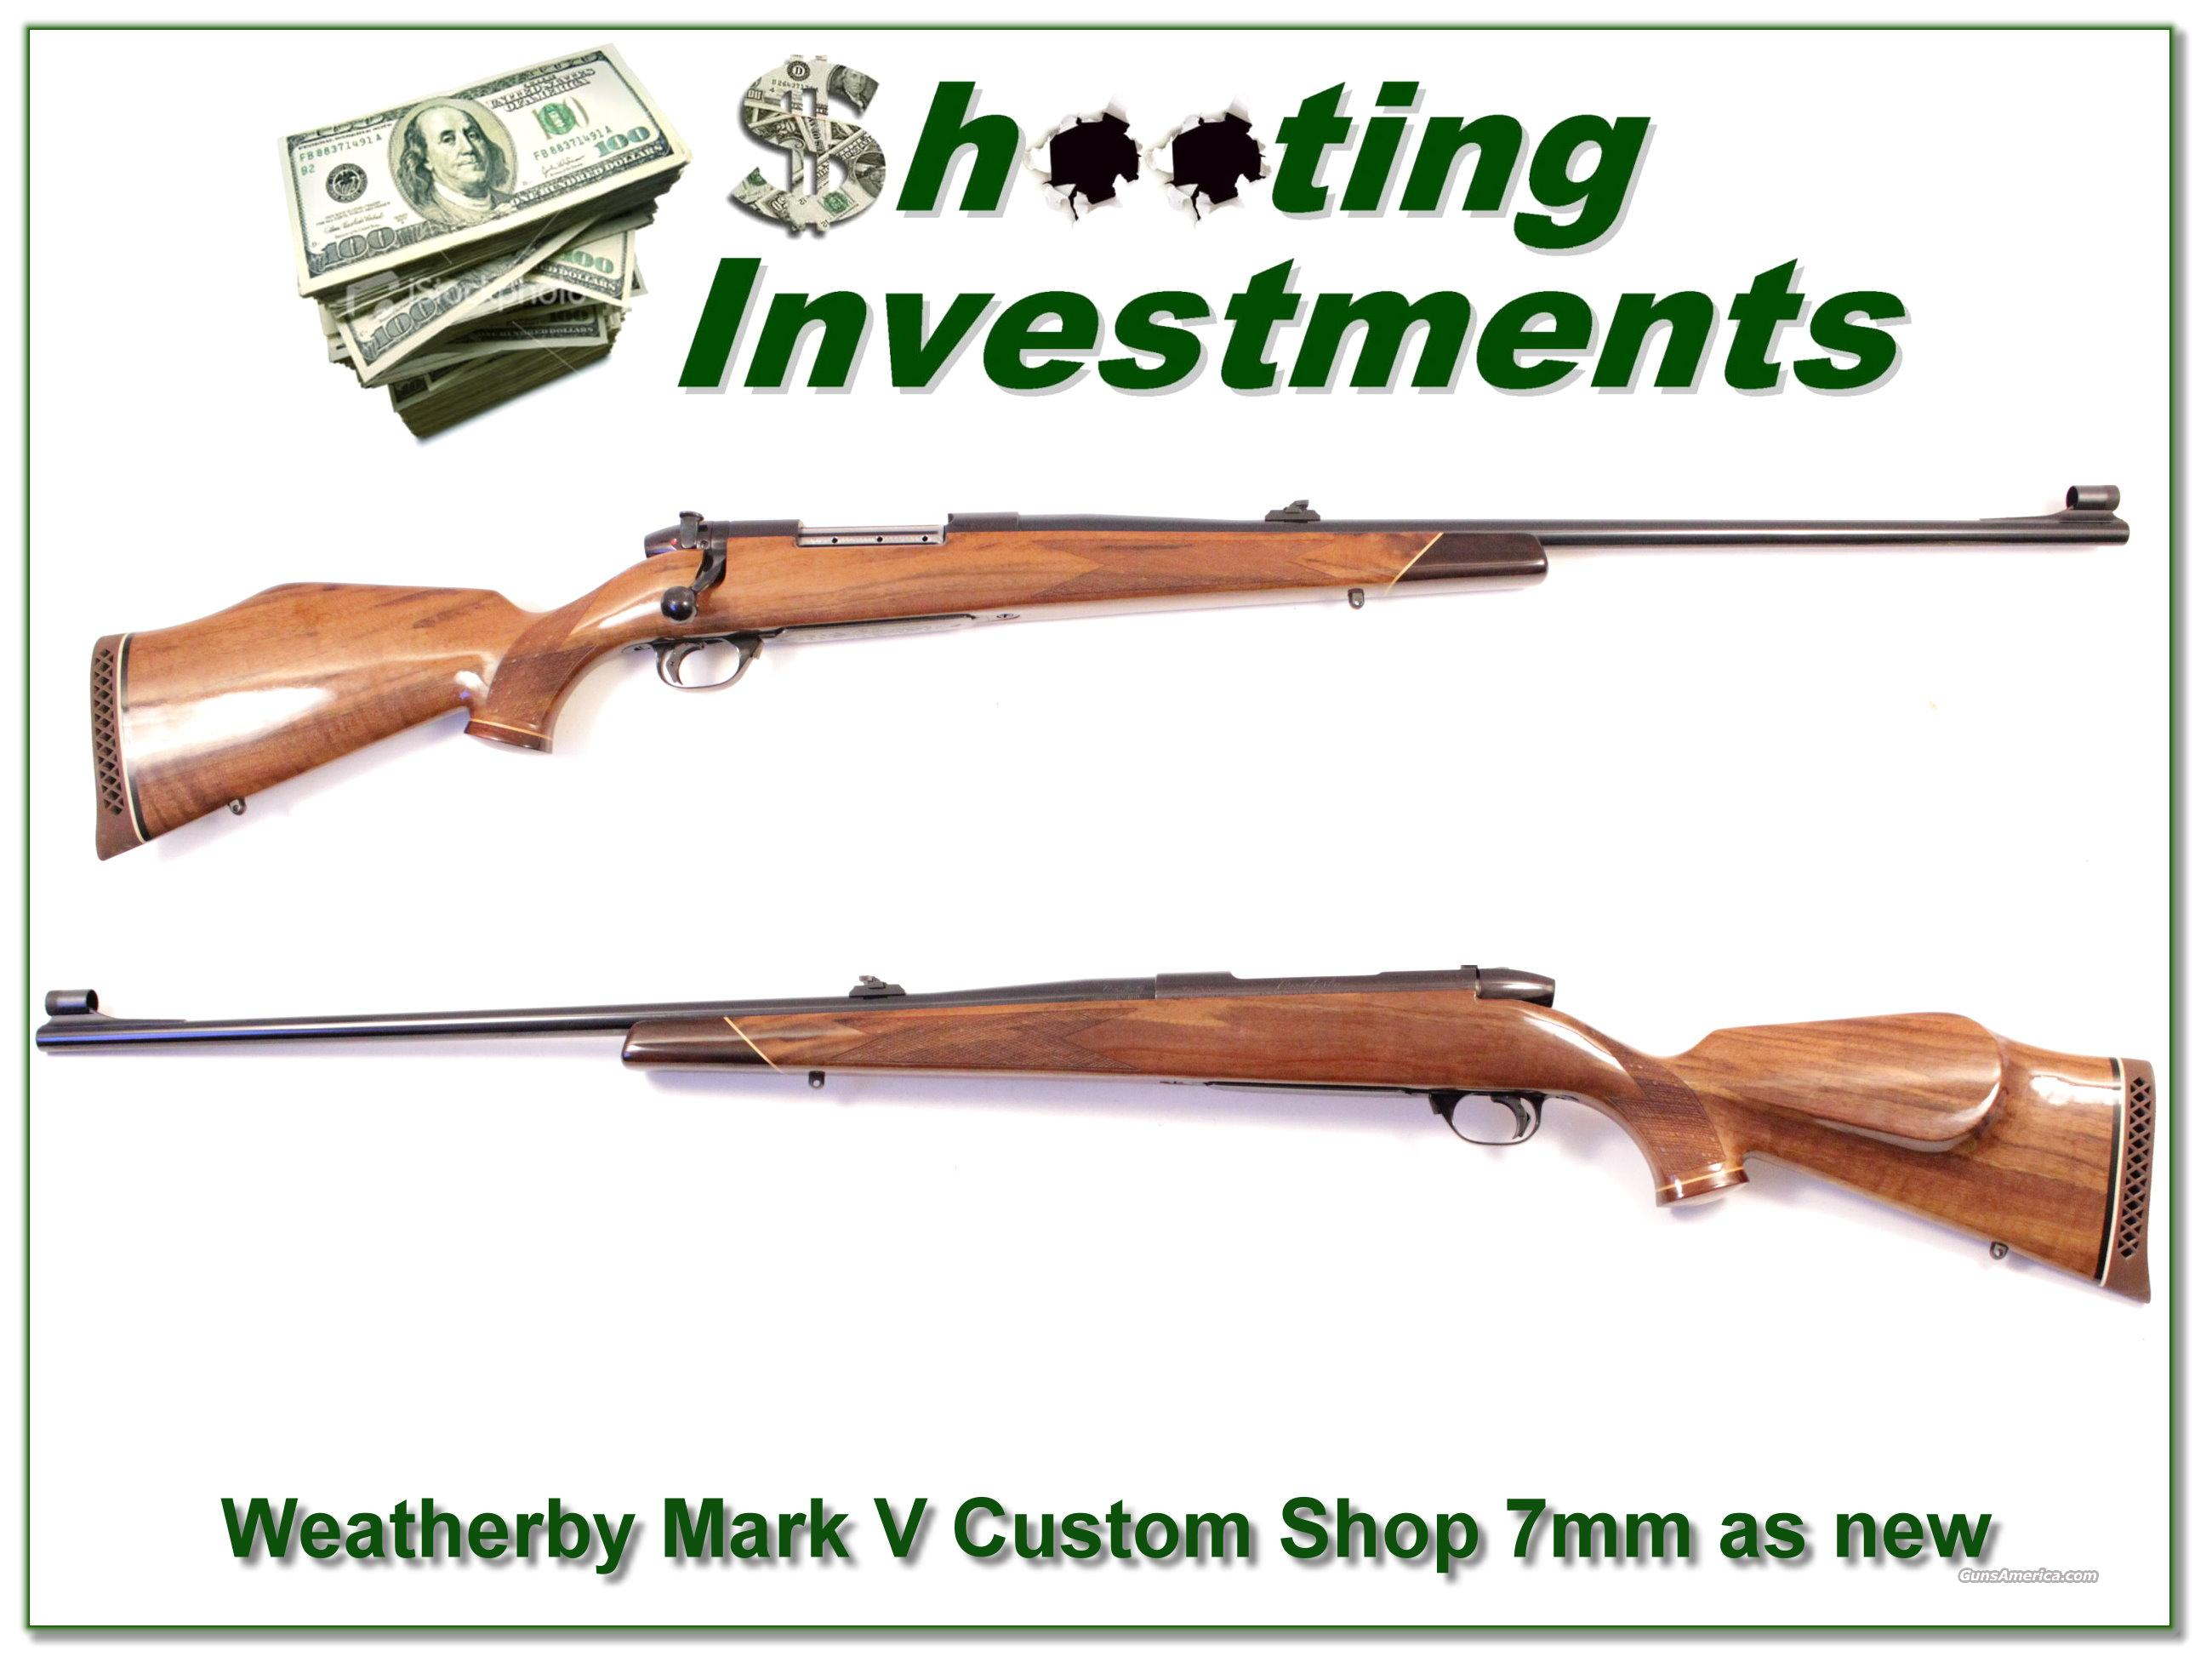 Weatherby Mark V Deluxe Custom Shop 26in 7mm Wthy Mag!  Guns > Rifles > Weatherby Rifles > Sporting